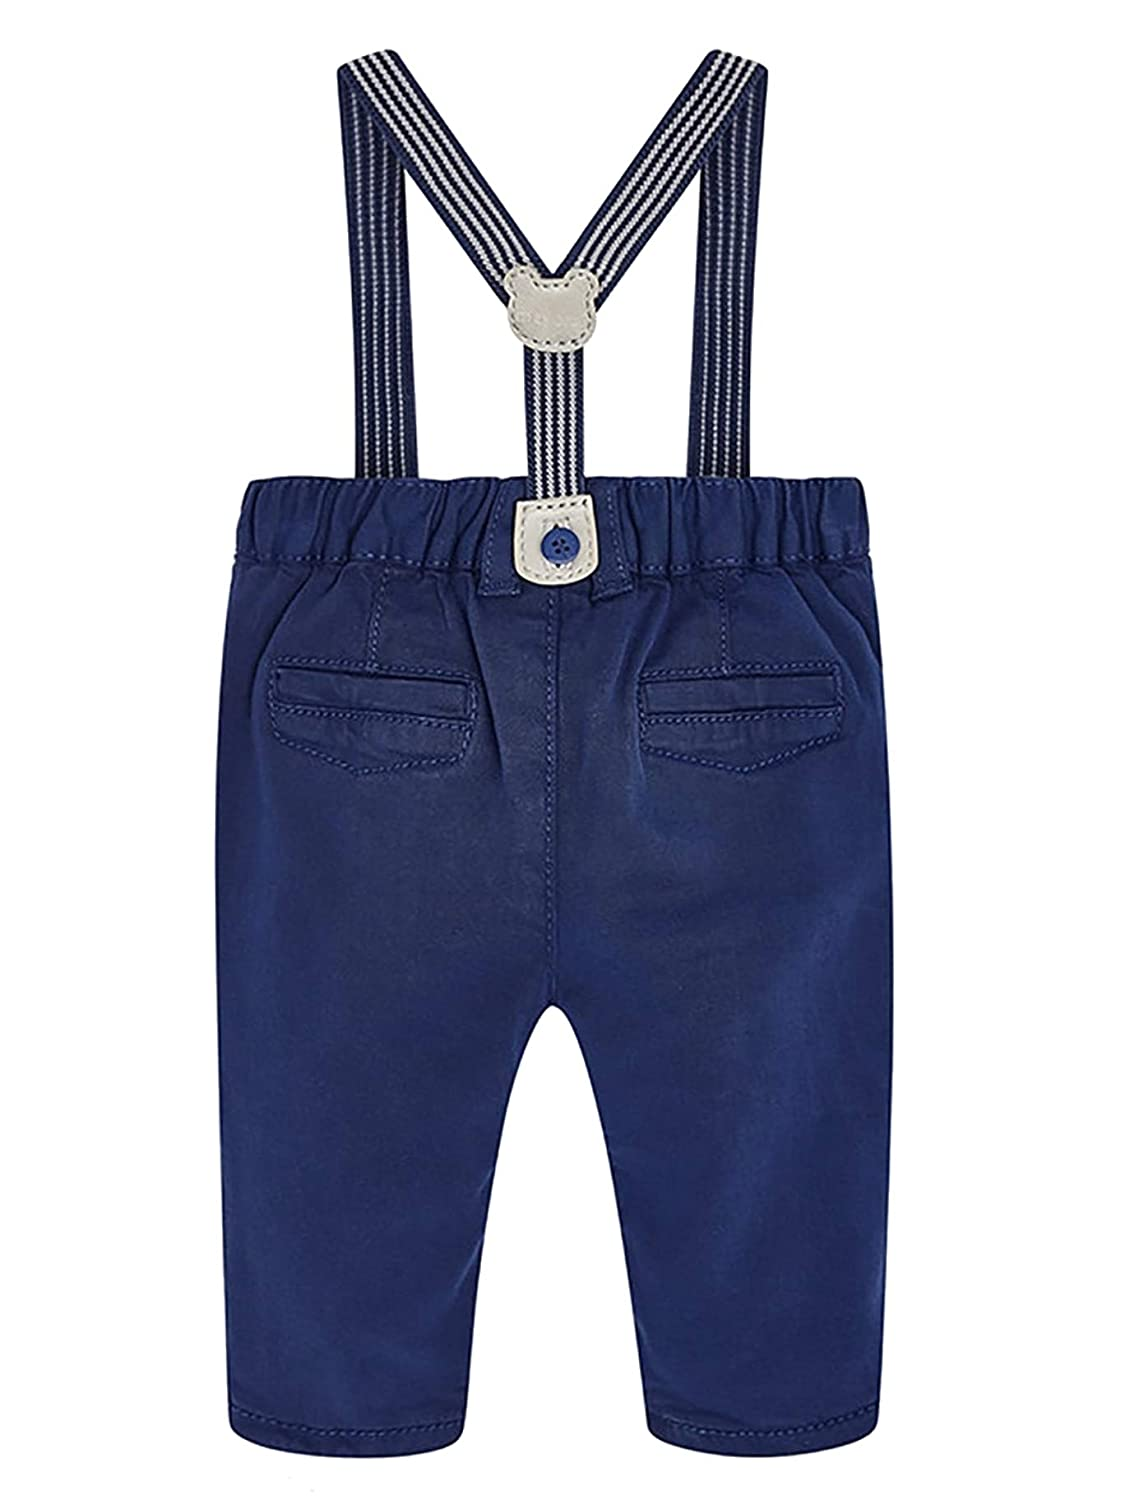 ab2f529c4 Amazon.com: Mayoral 18-02524-064 - Long Trousers with Suspenders for Baby- Boys 12 Months Atlantic: Clothing